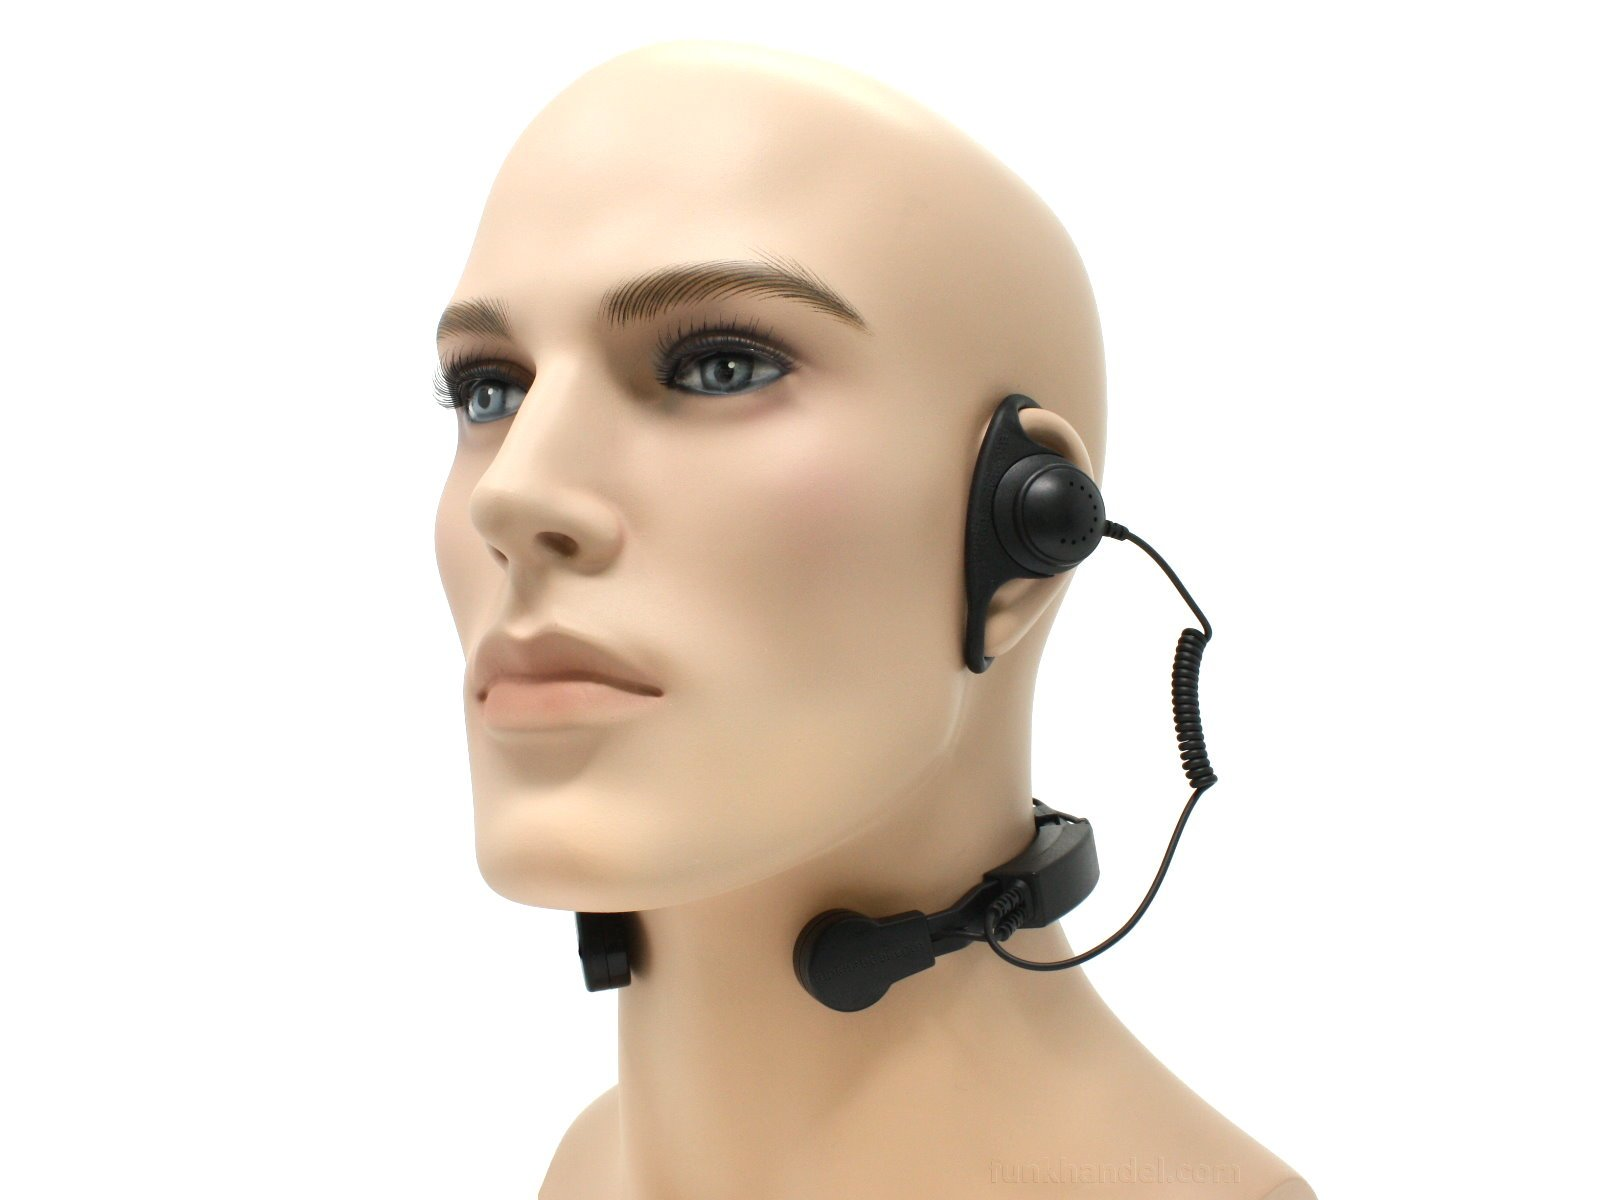 Profi Kehlkopf Security Headset robust KEP35-STP